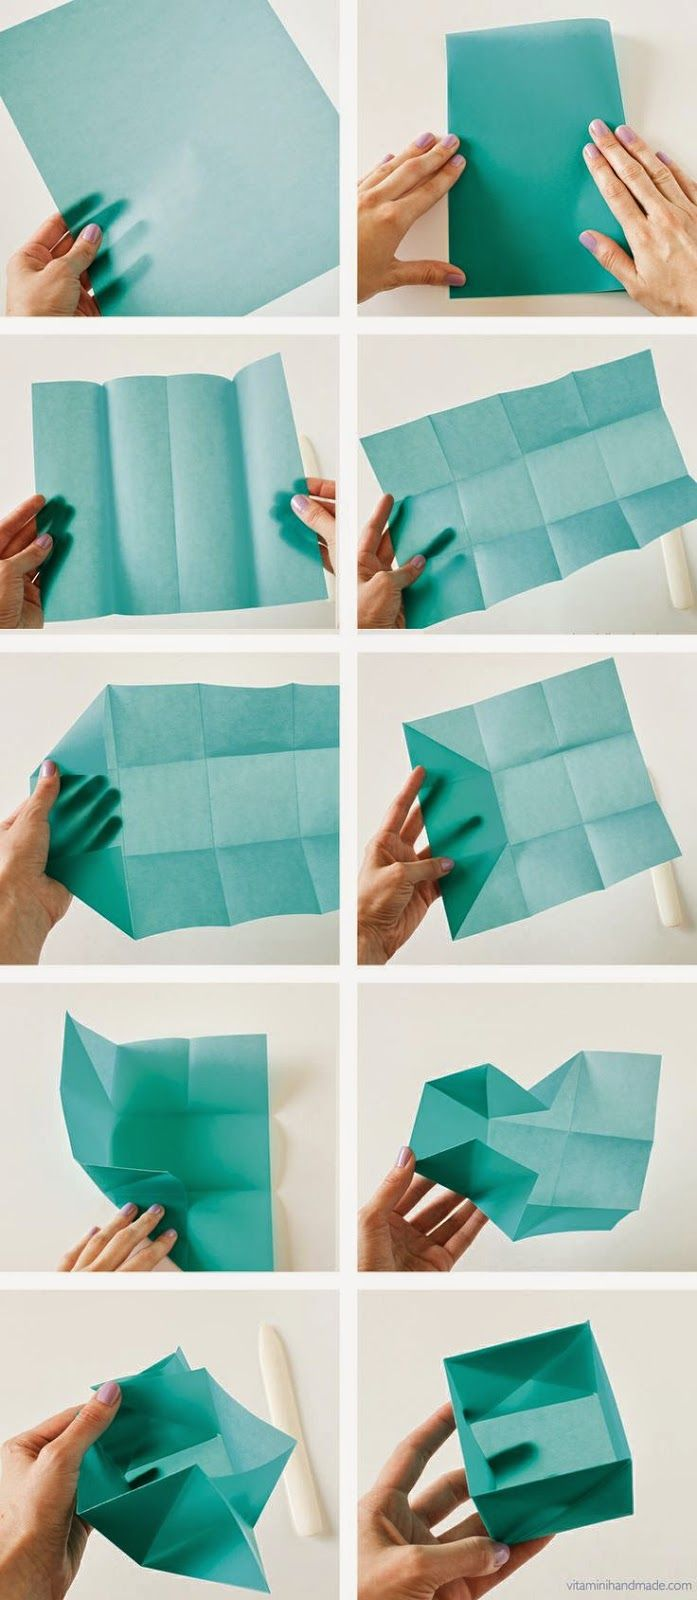 Easy Origami Box Folding Instructions | 1600x697